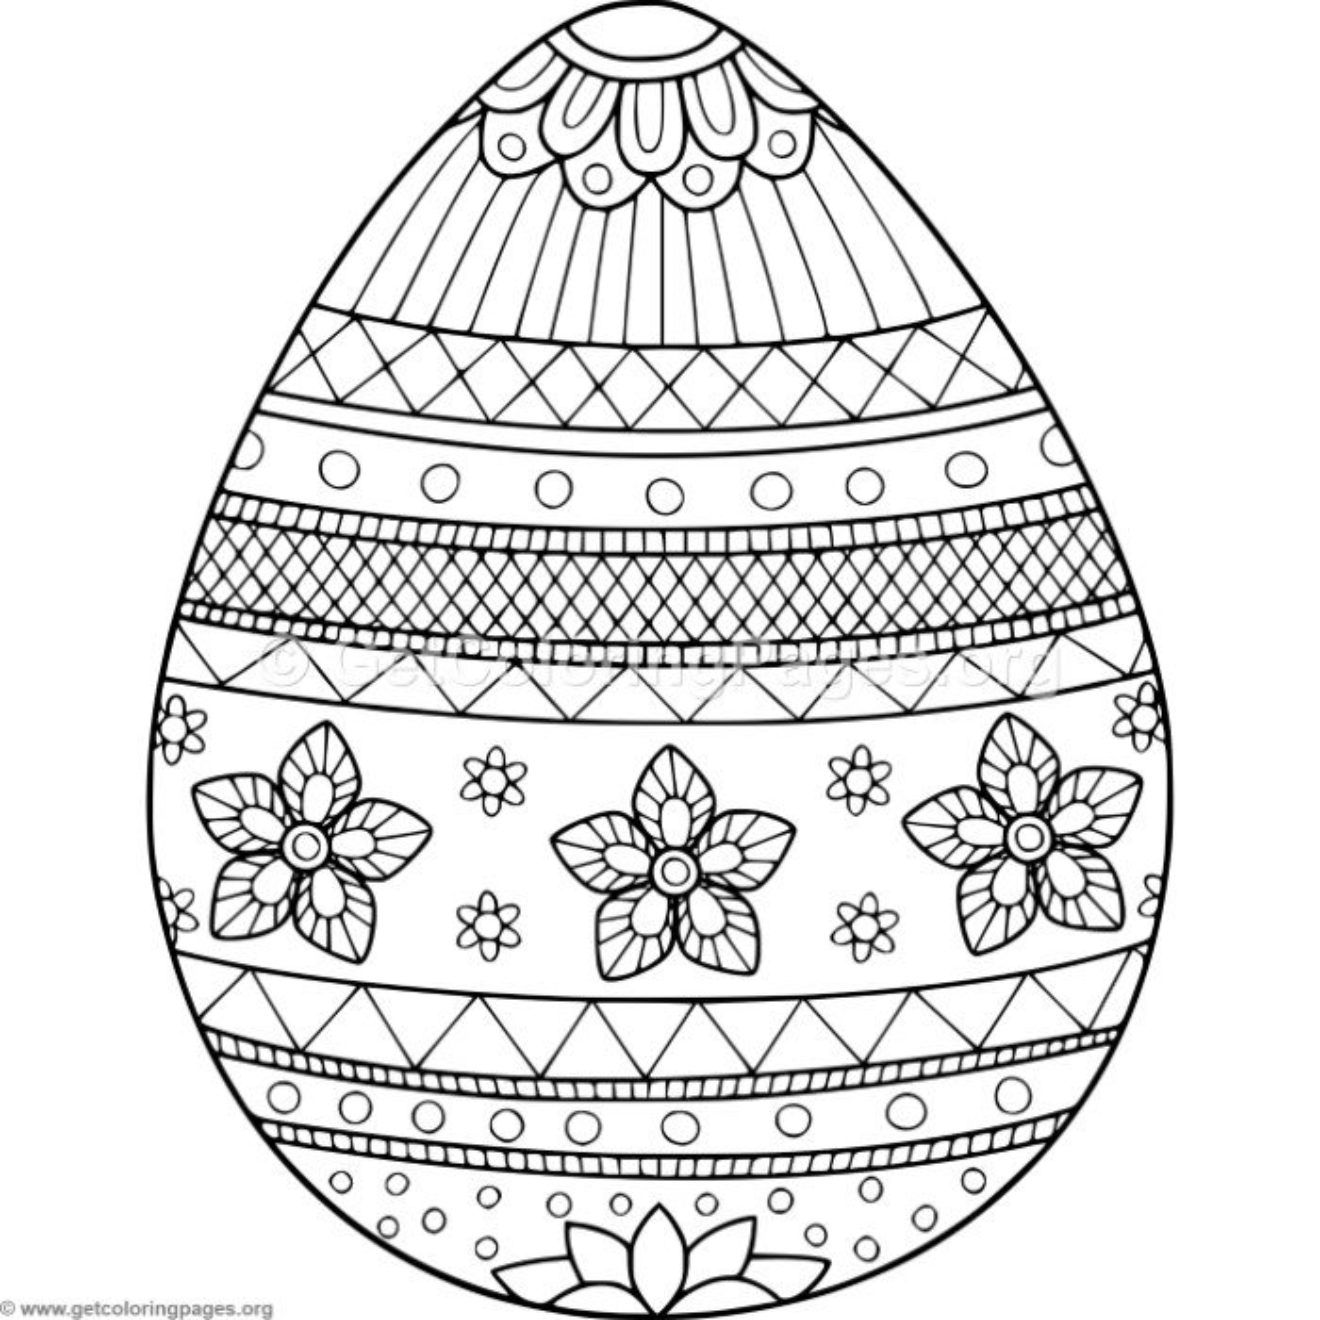 Easter Coloring Pages Getcoloringpages Org Easter Egg Coloring